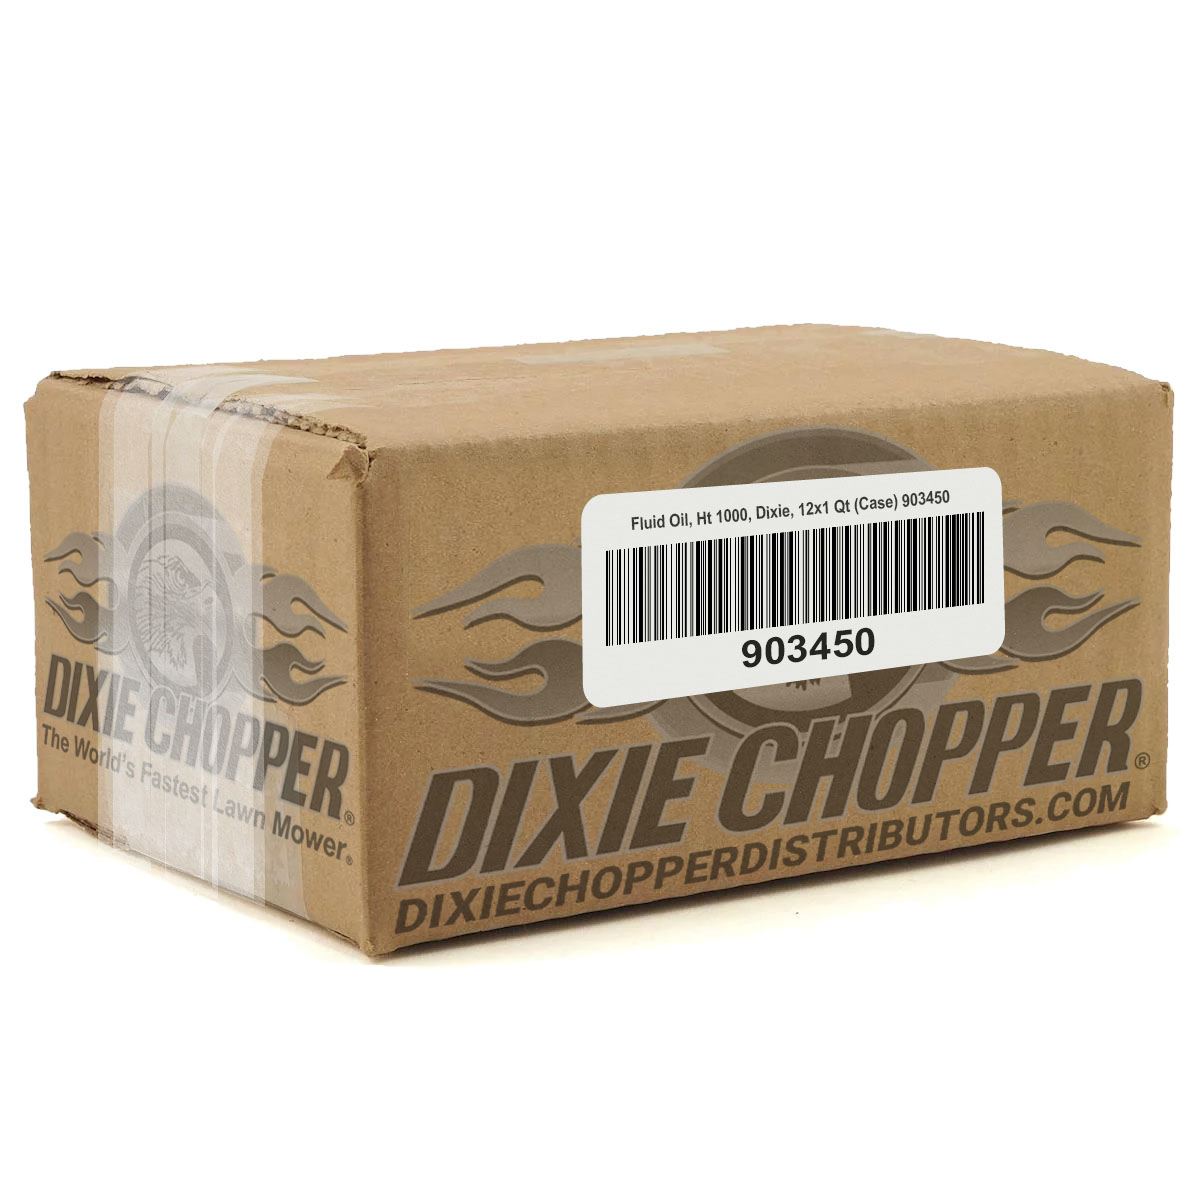 Fluid - Oil, HT-1000, Dixie, 12x1 qt (case)